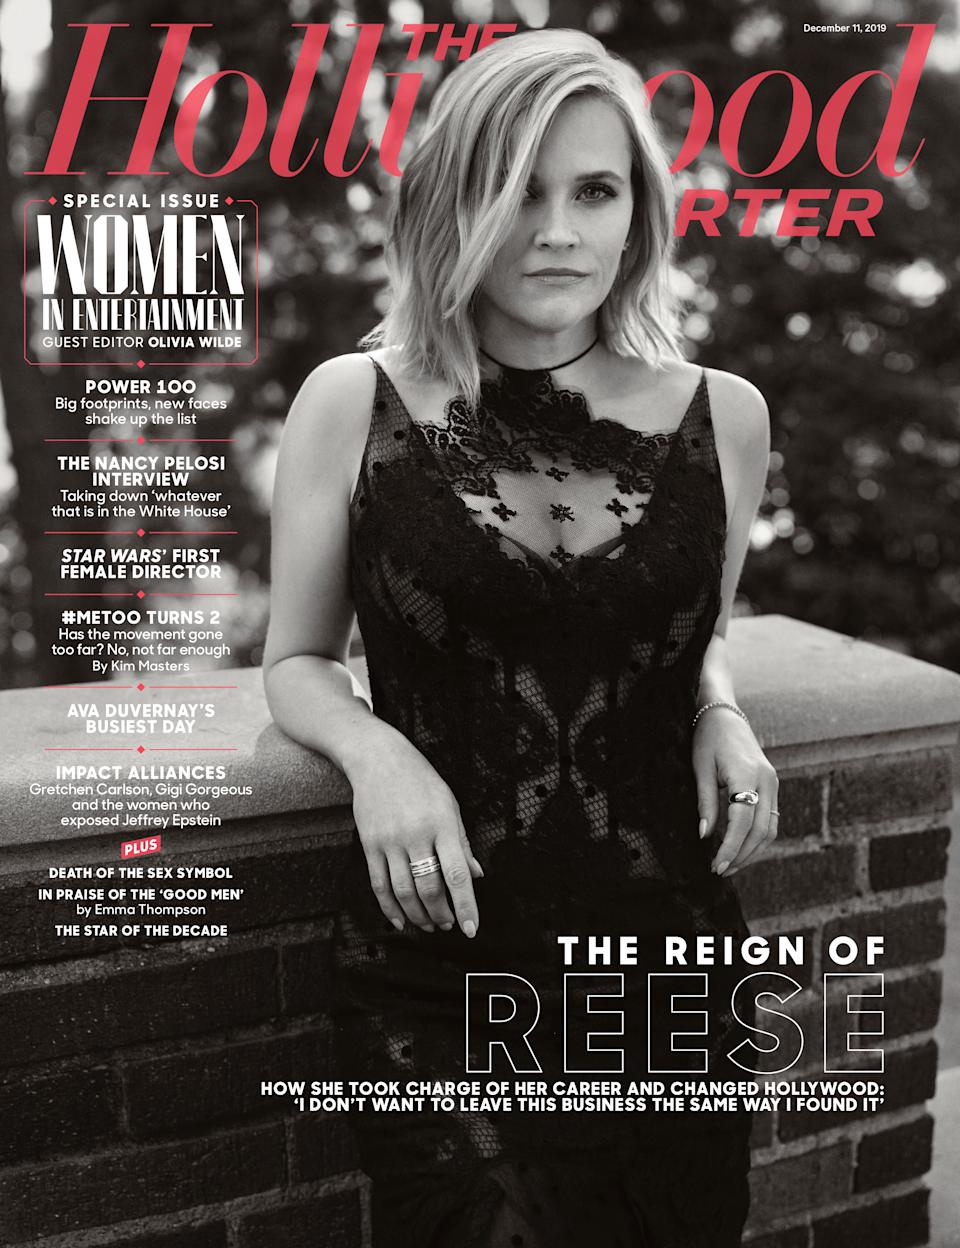 Reese Witherspoon covers The Hollywood Reporter's Women in Entertainment issue. (Photo: The Hollywood Reporter)